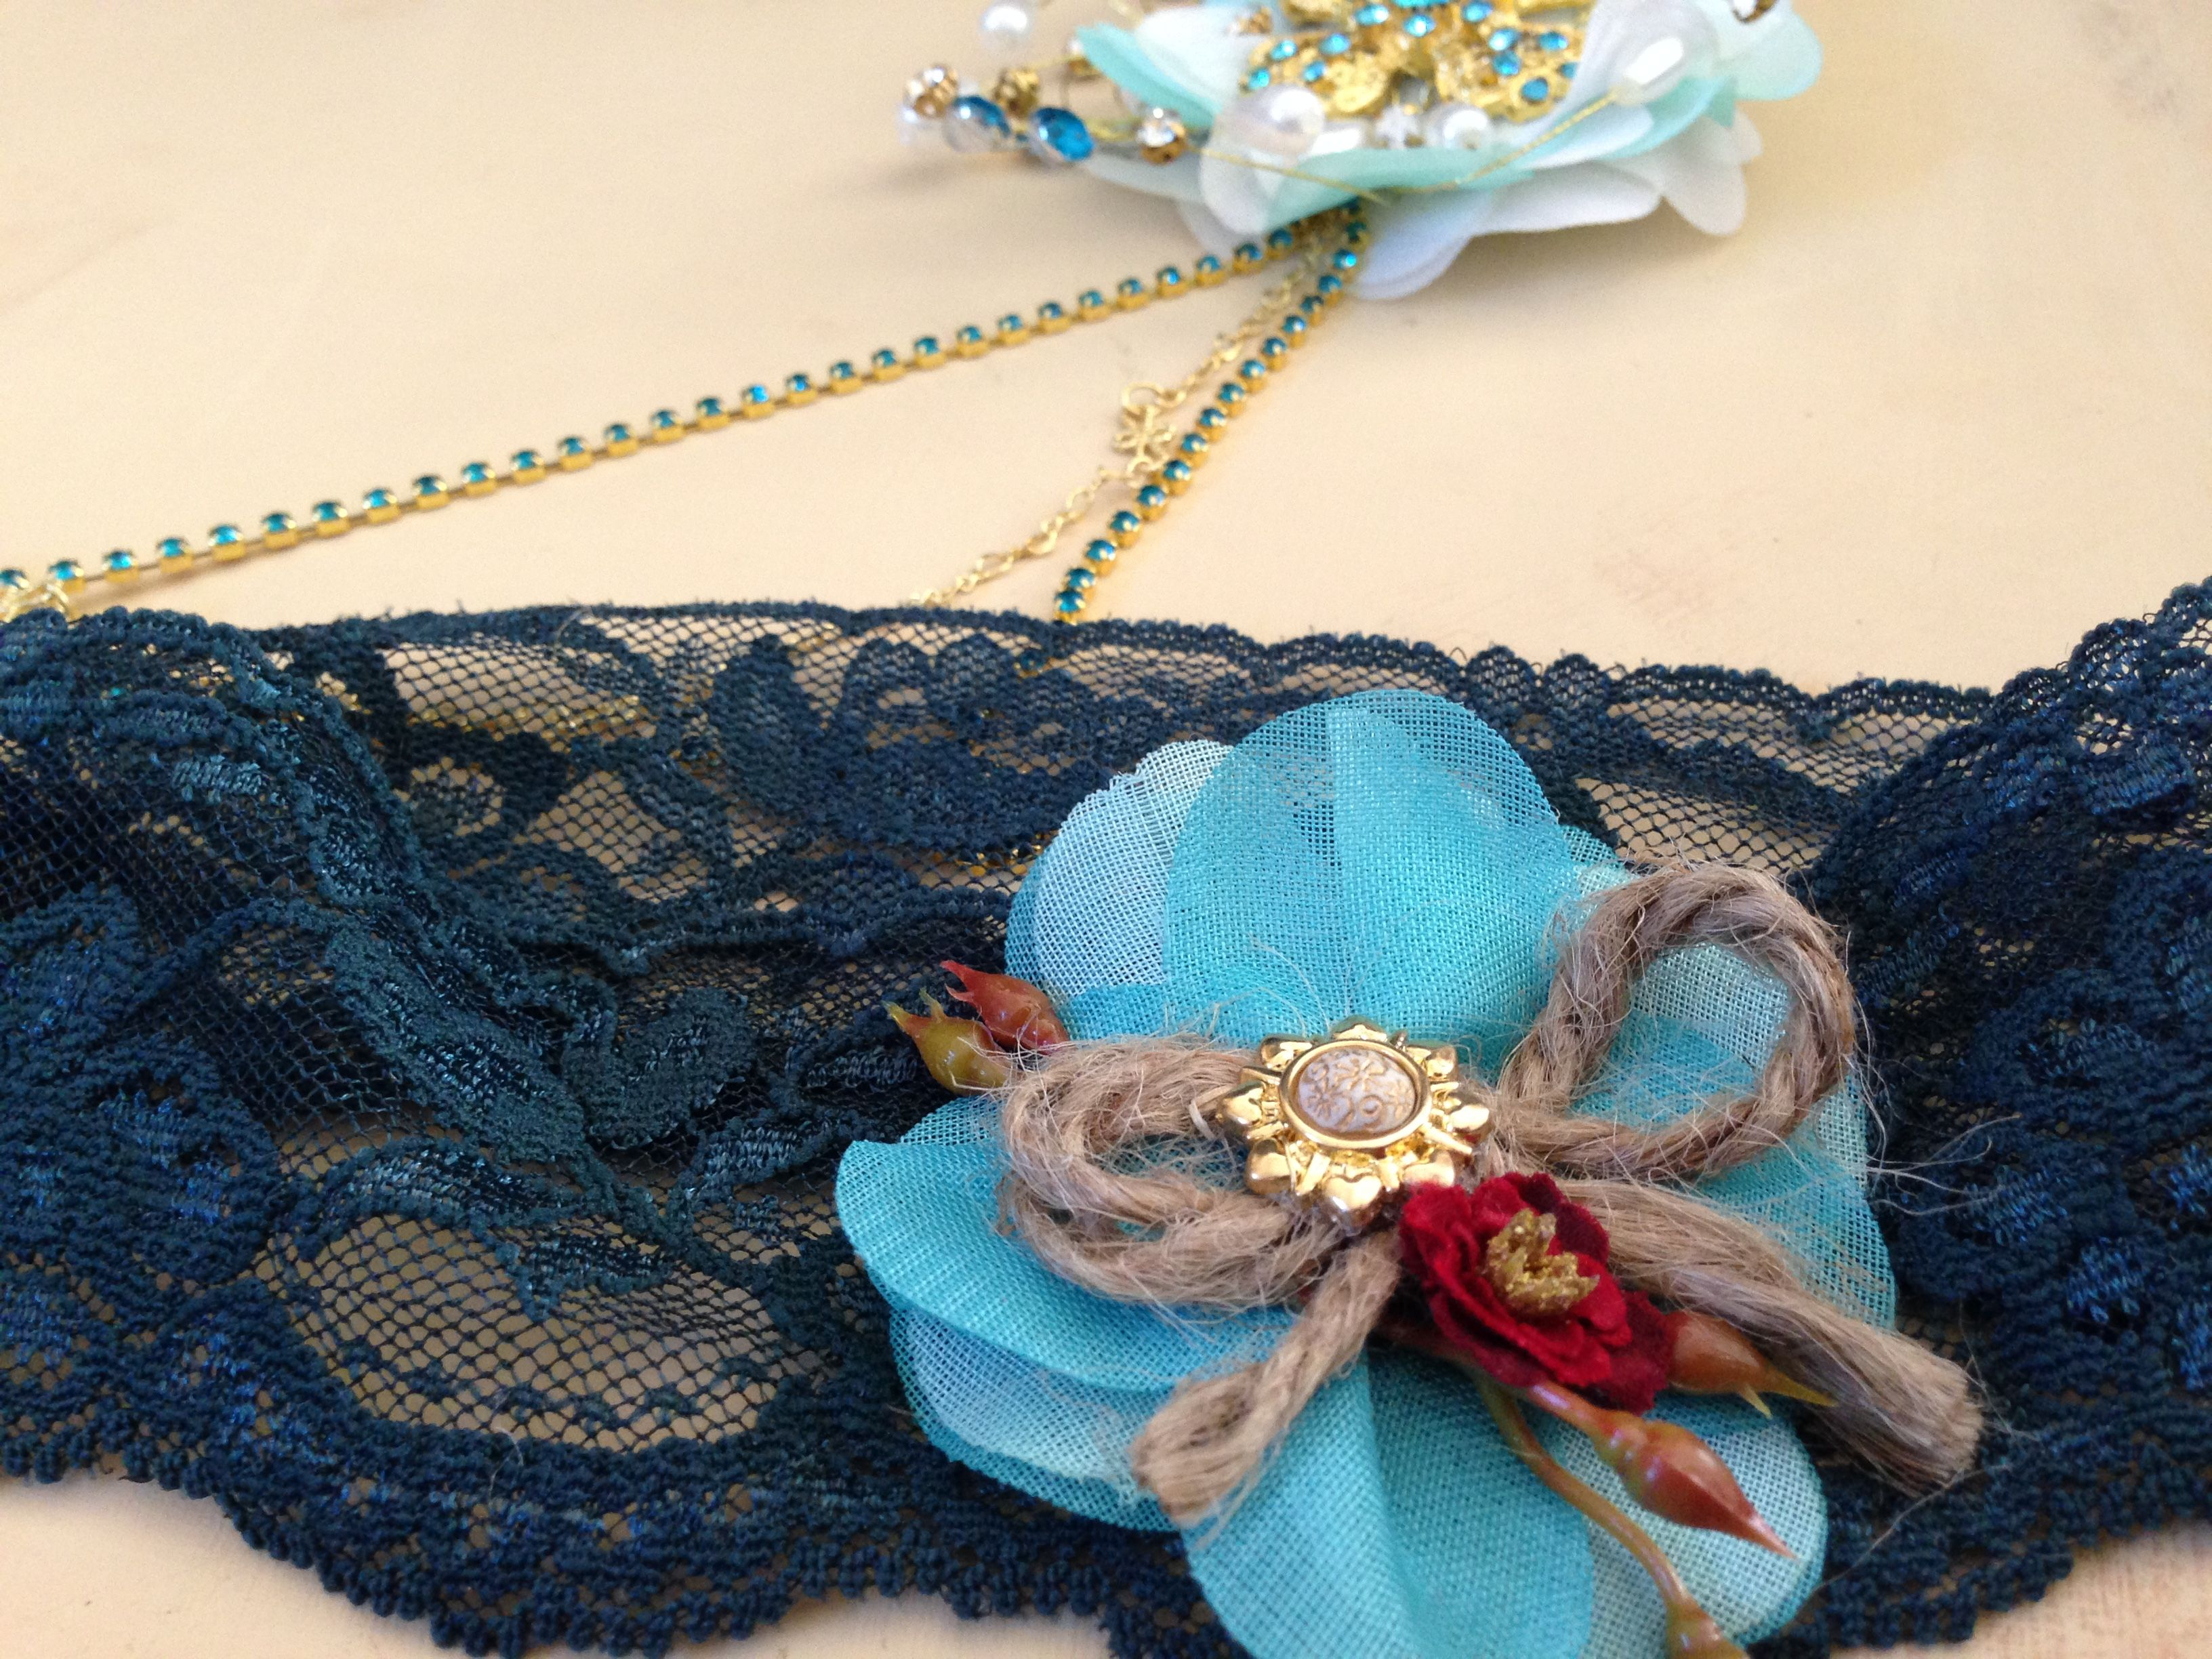 My gift to the bride... I know Savannah didn't order a garter but I found the perfect dark teal lace and I just had to make one for her.